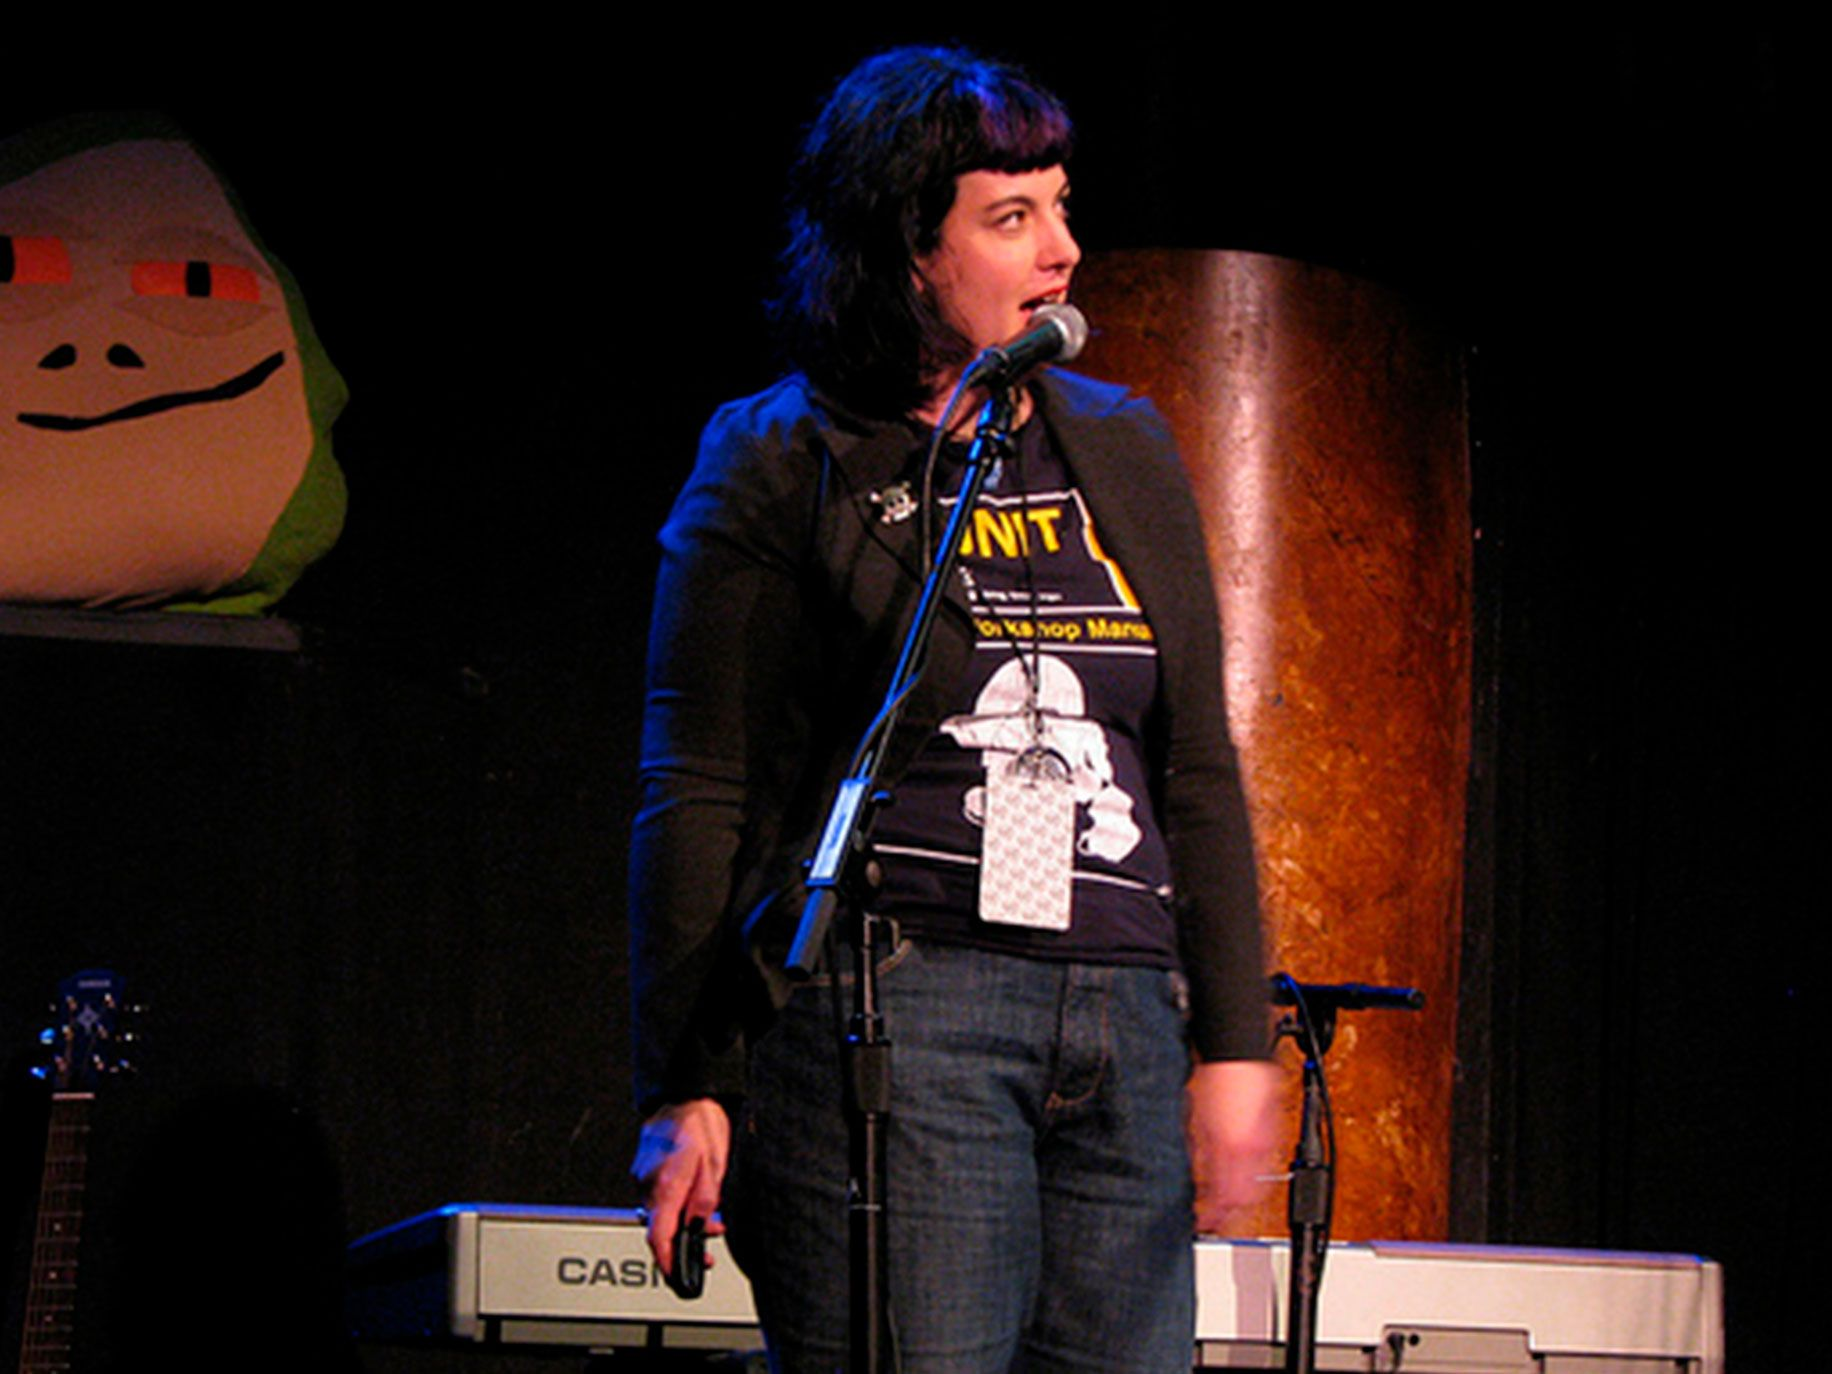 Bonnie Burton talks about making bizarre Star Wars crafts on stage at w00tstock San Francisco in 2010.